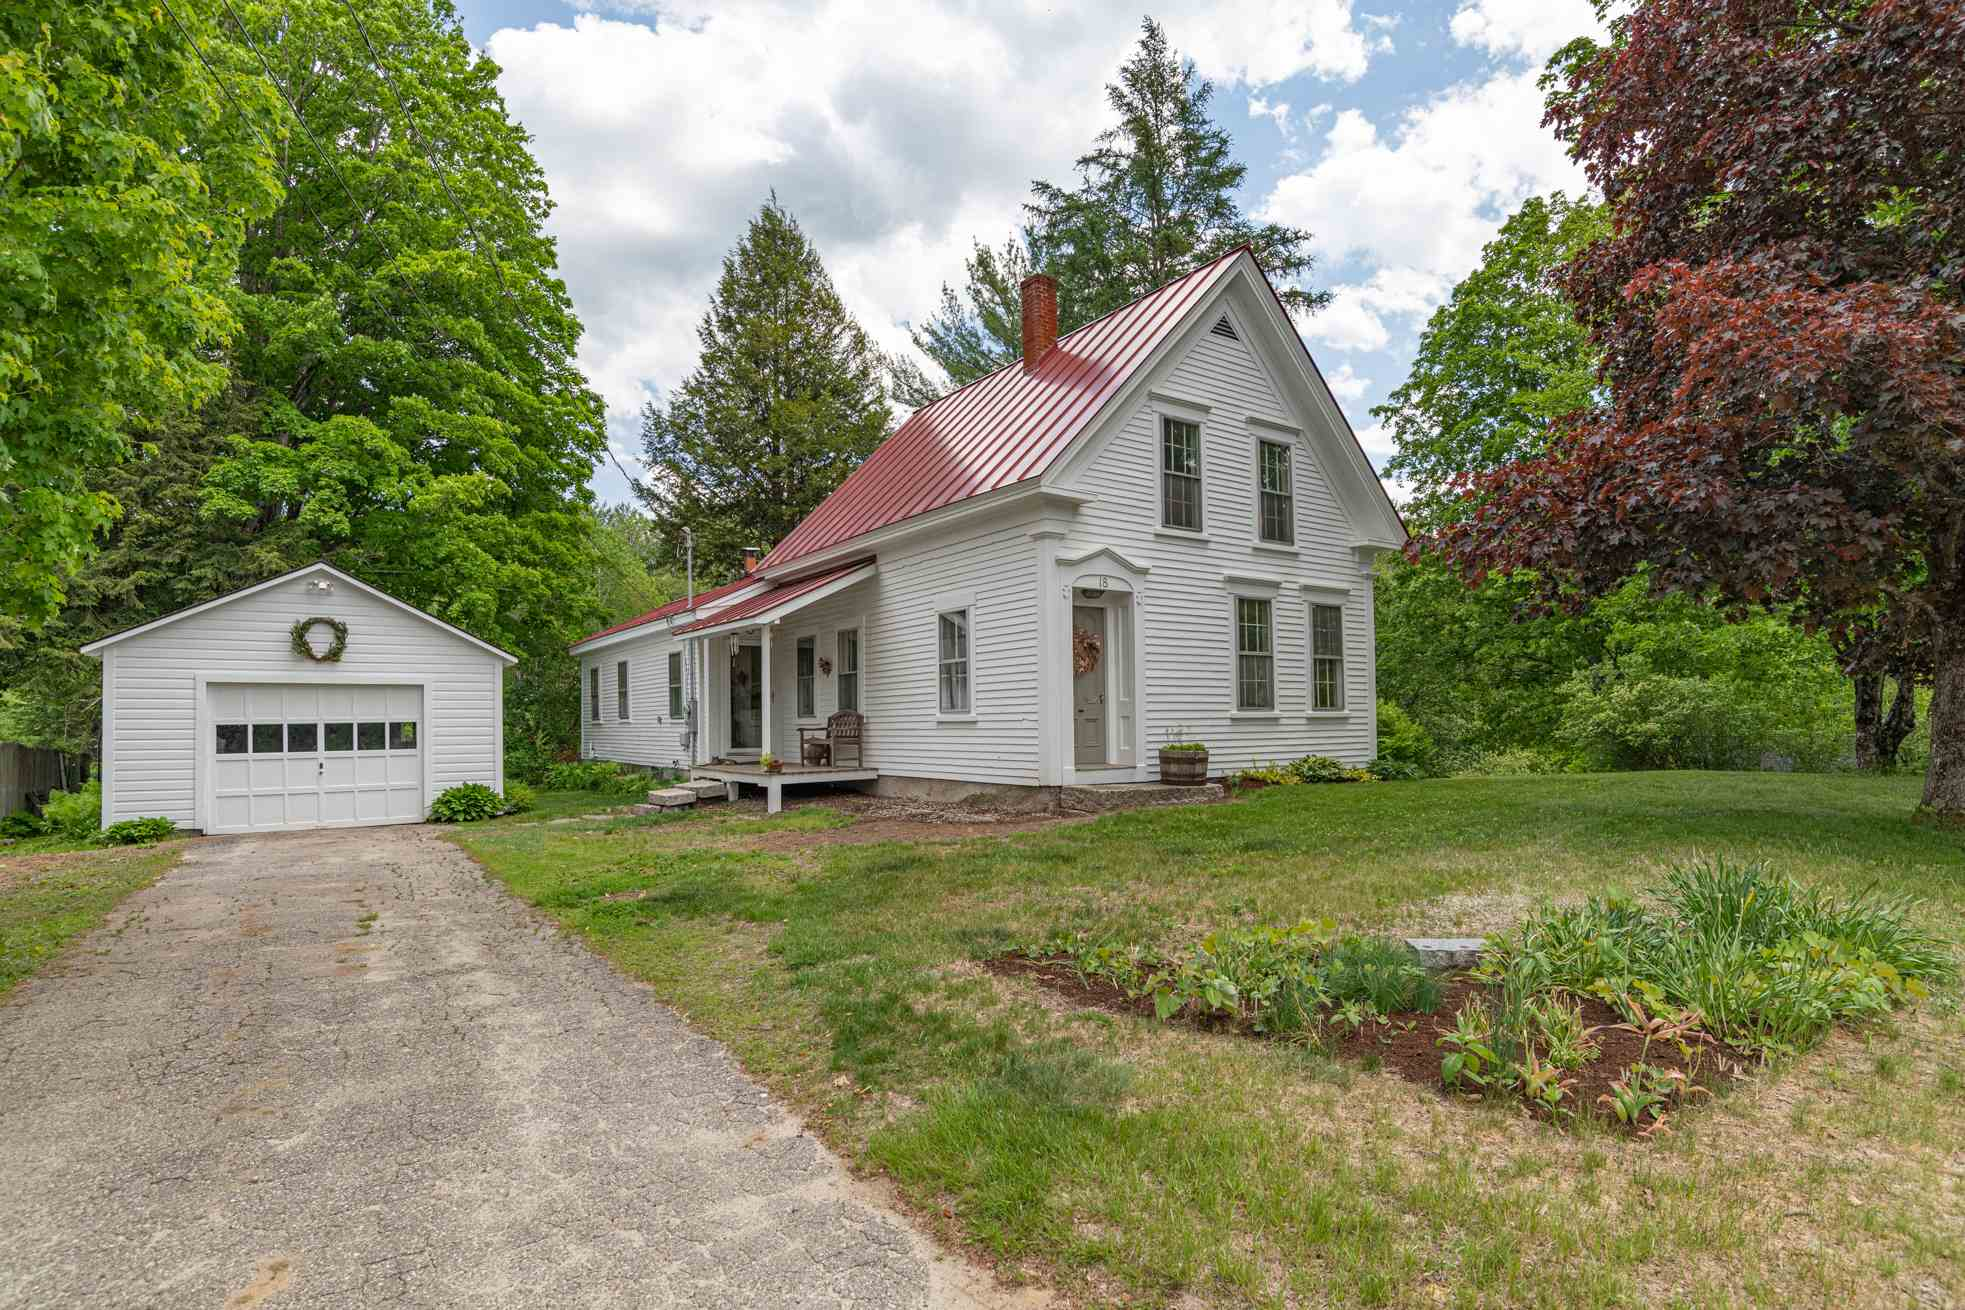 MLS 4810304: 18 Church Place, Wilmot NH